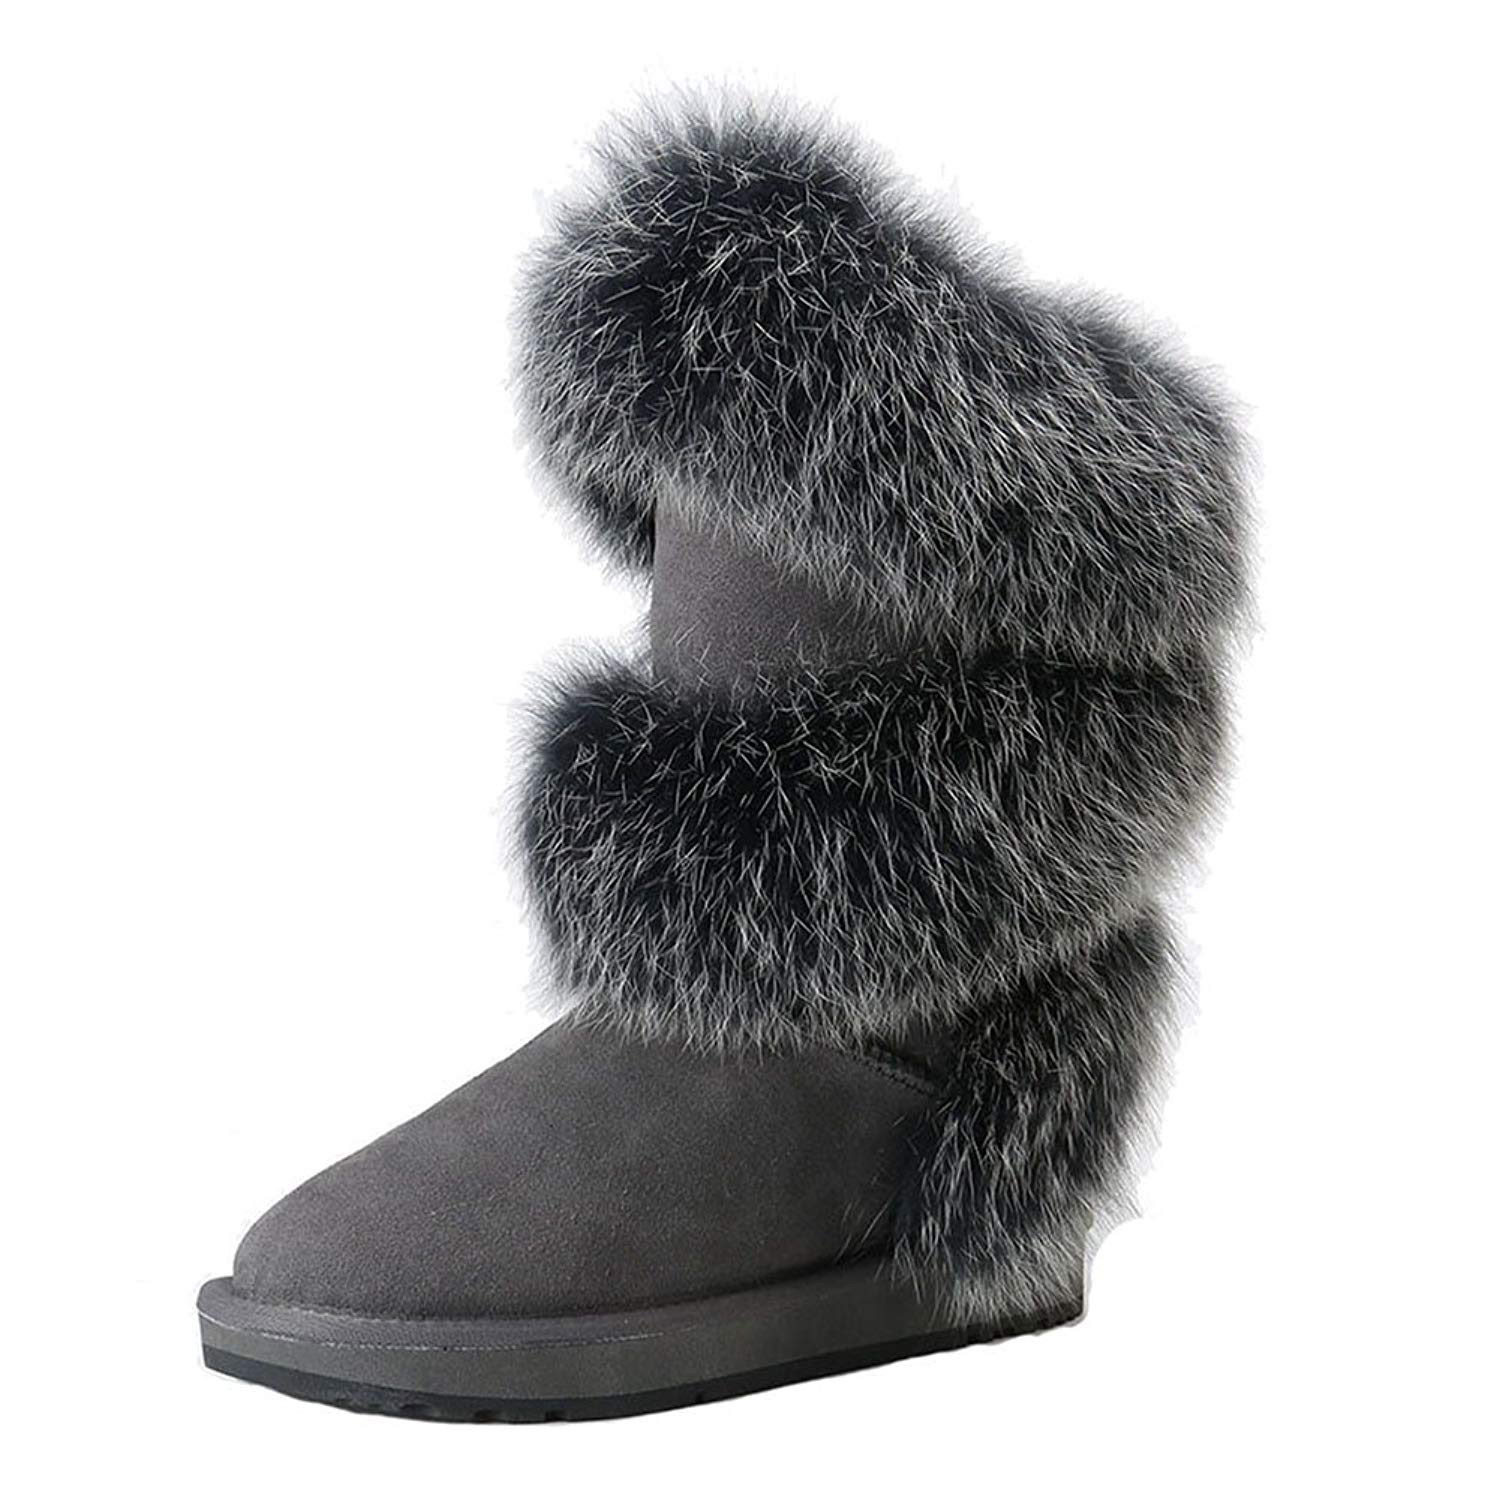 e754aabf3ec Get Quotations · INOE CREATE GLAMOUR Real Fox Fur Sheepskin Lined Boots For  Women Sheep Fur Lining Winter Snow